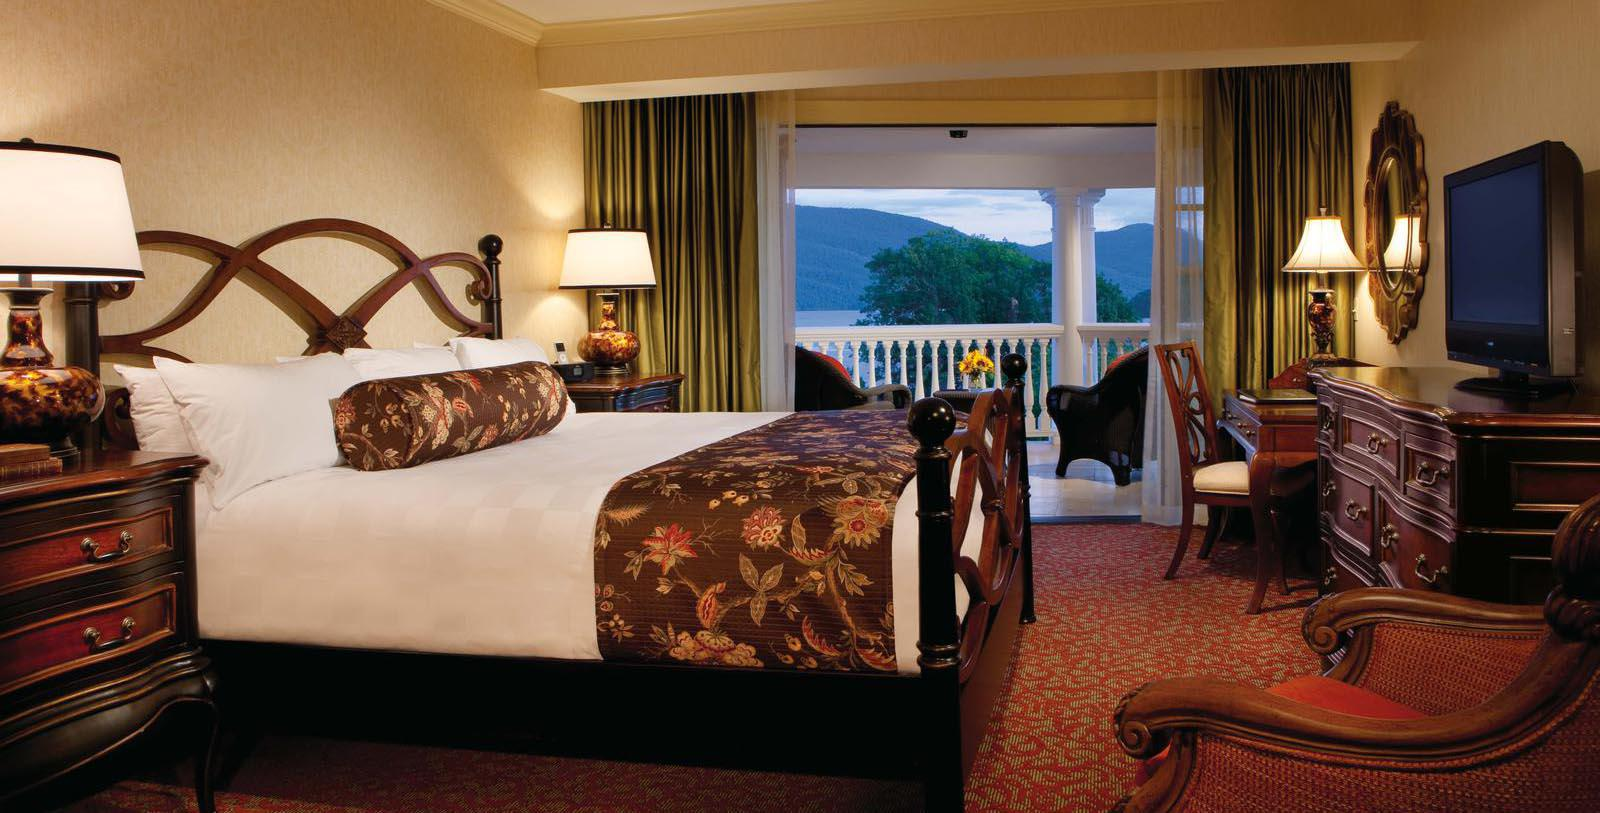 Image of The Sagamore Resort, Member of Historic Hotels of America, Accommodations